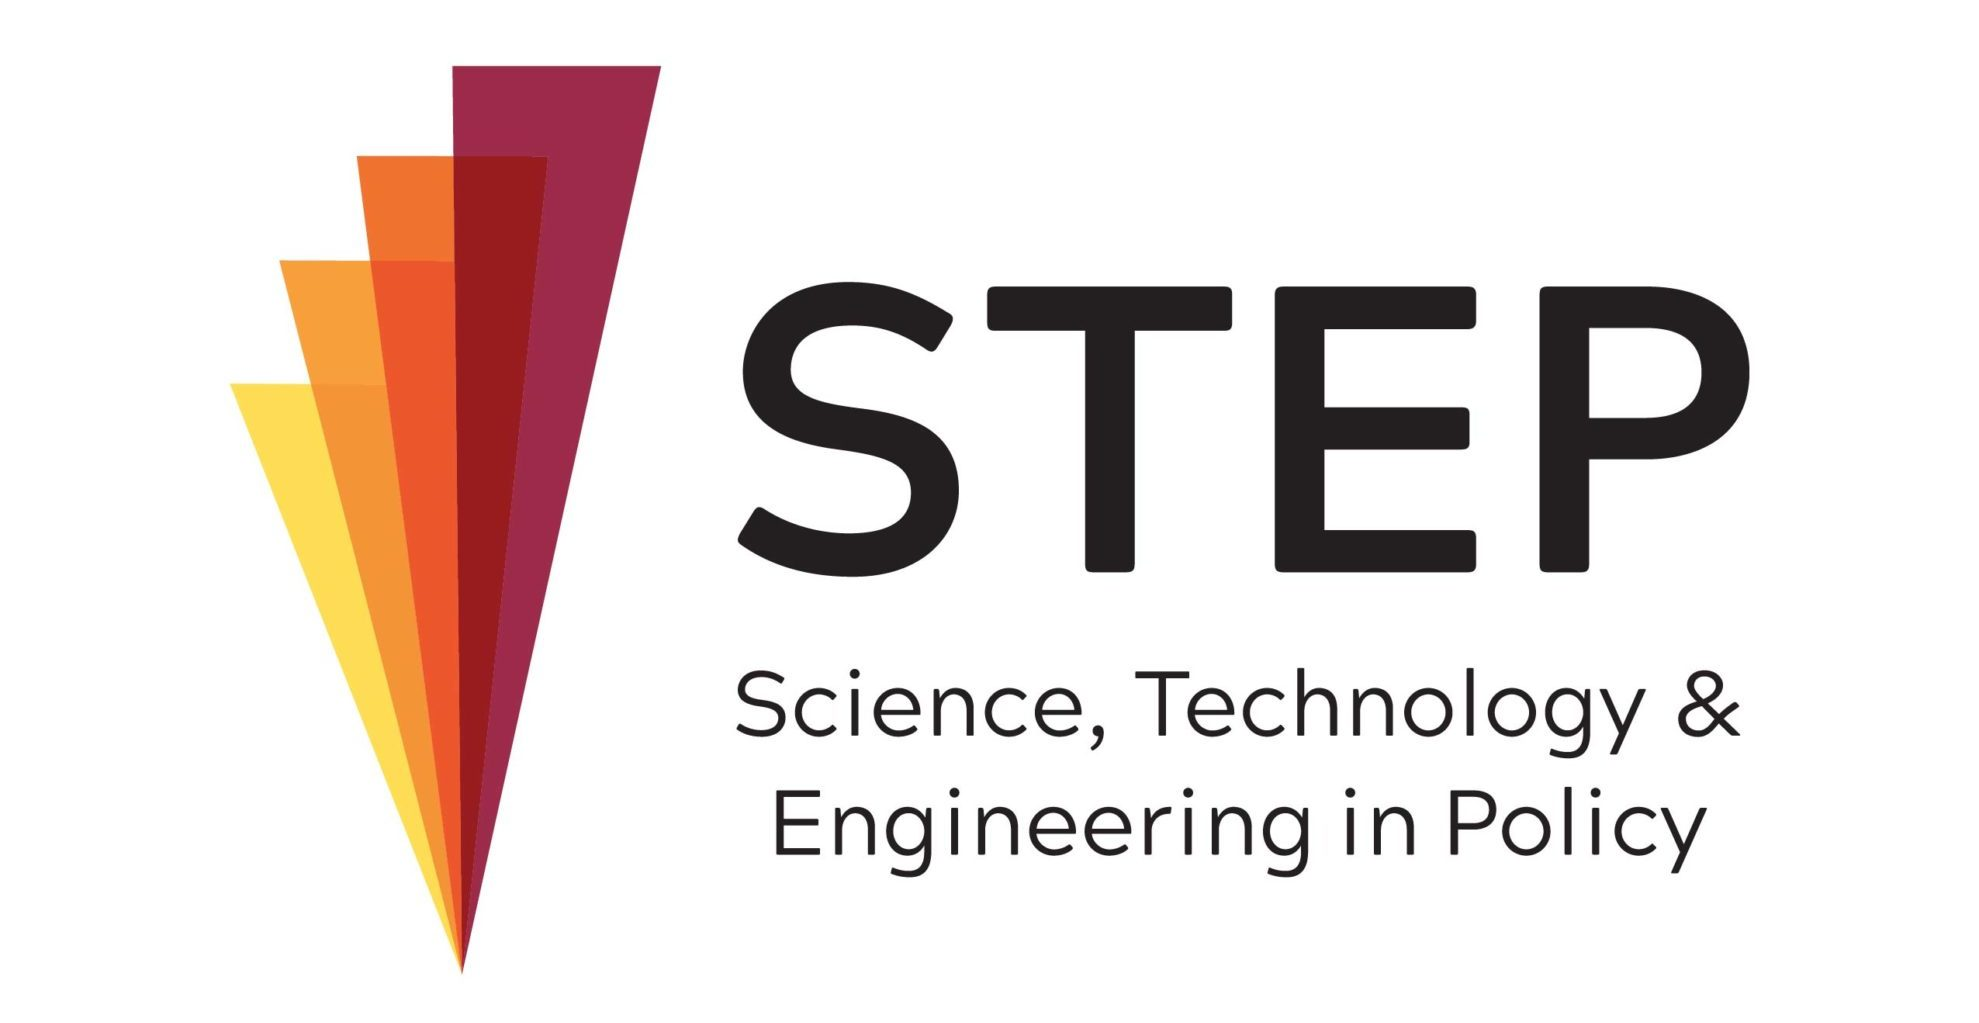 Science, Technology, and Engineering in Policy